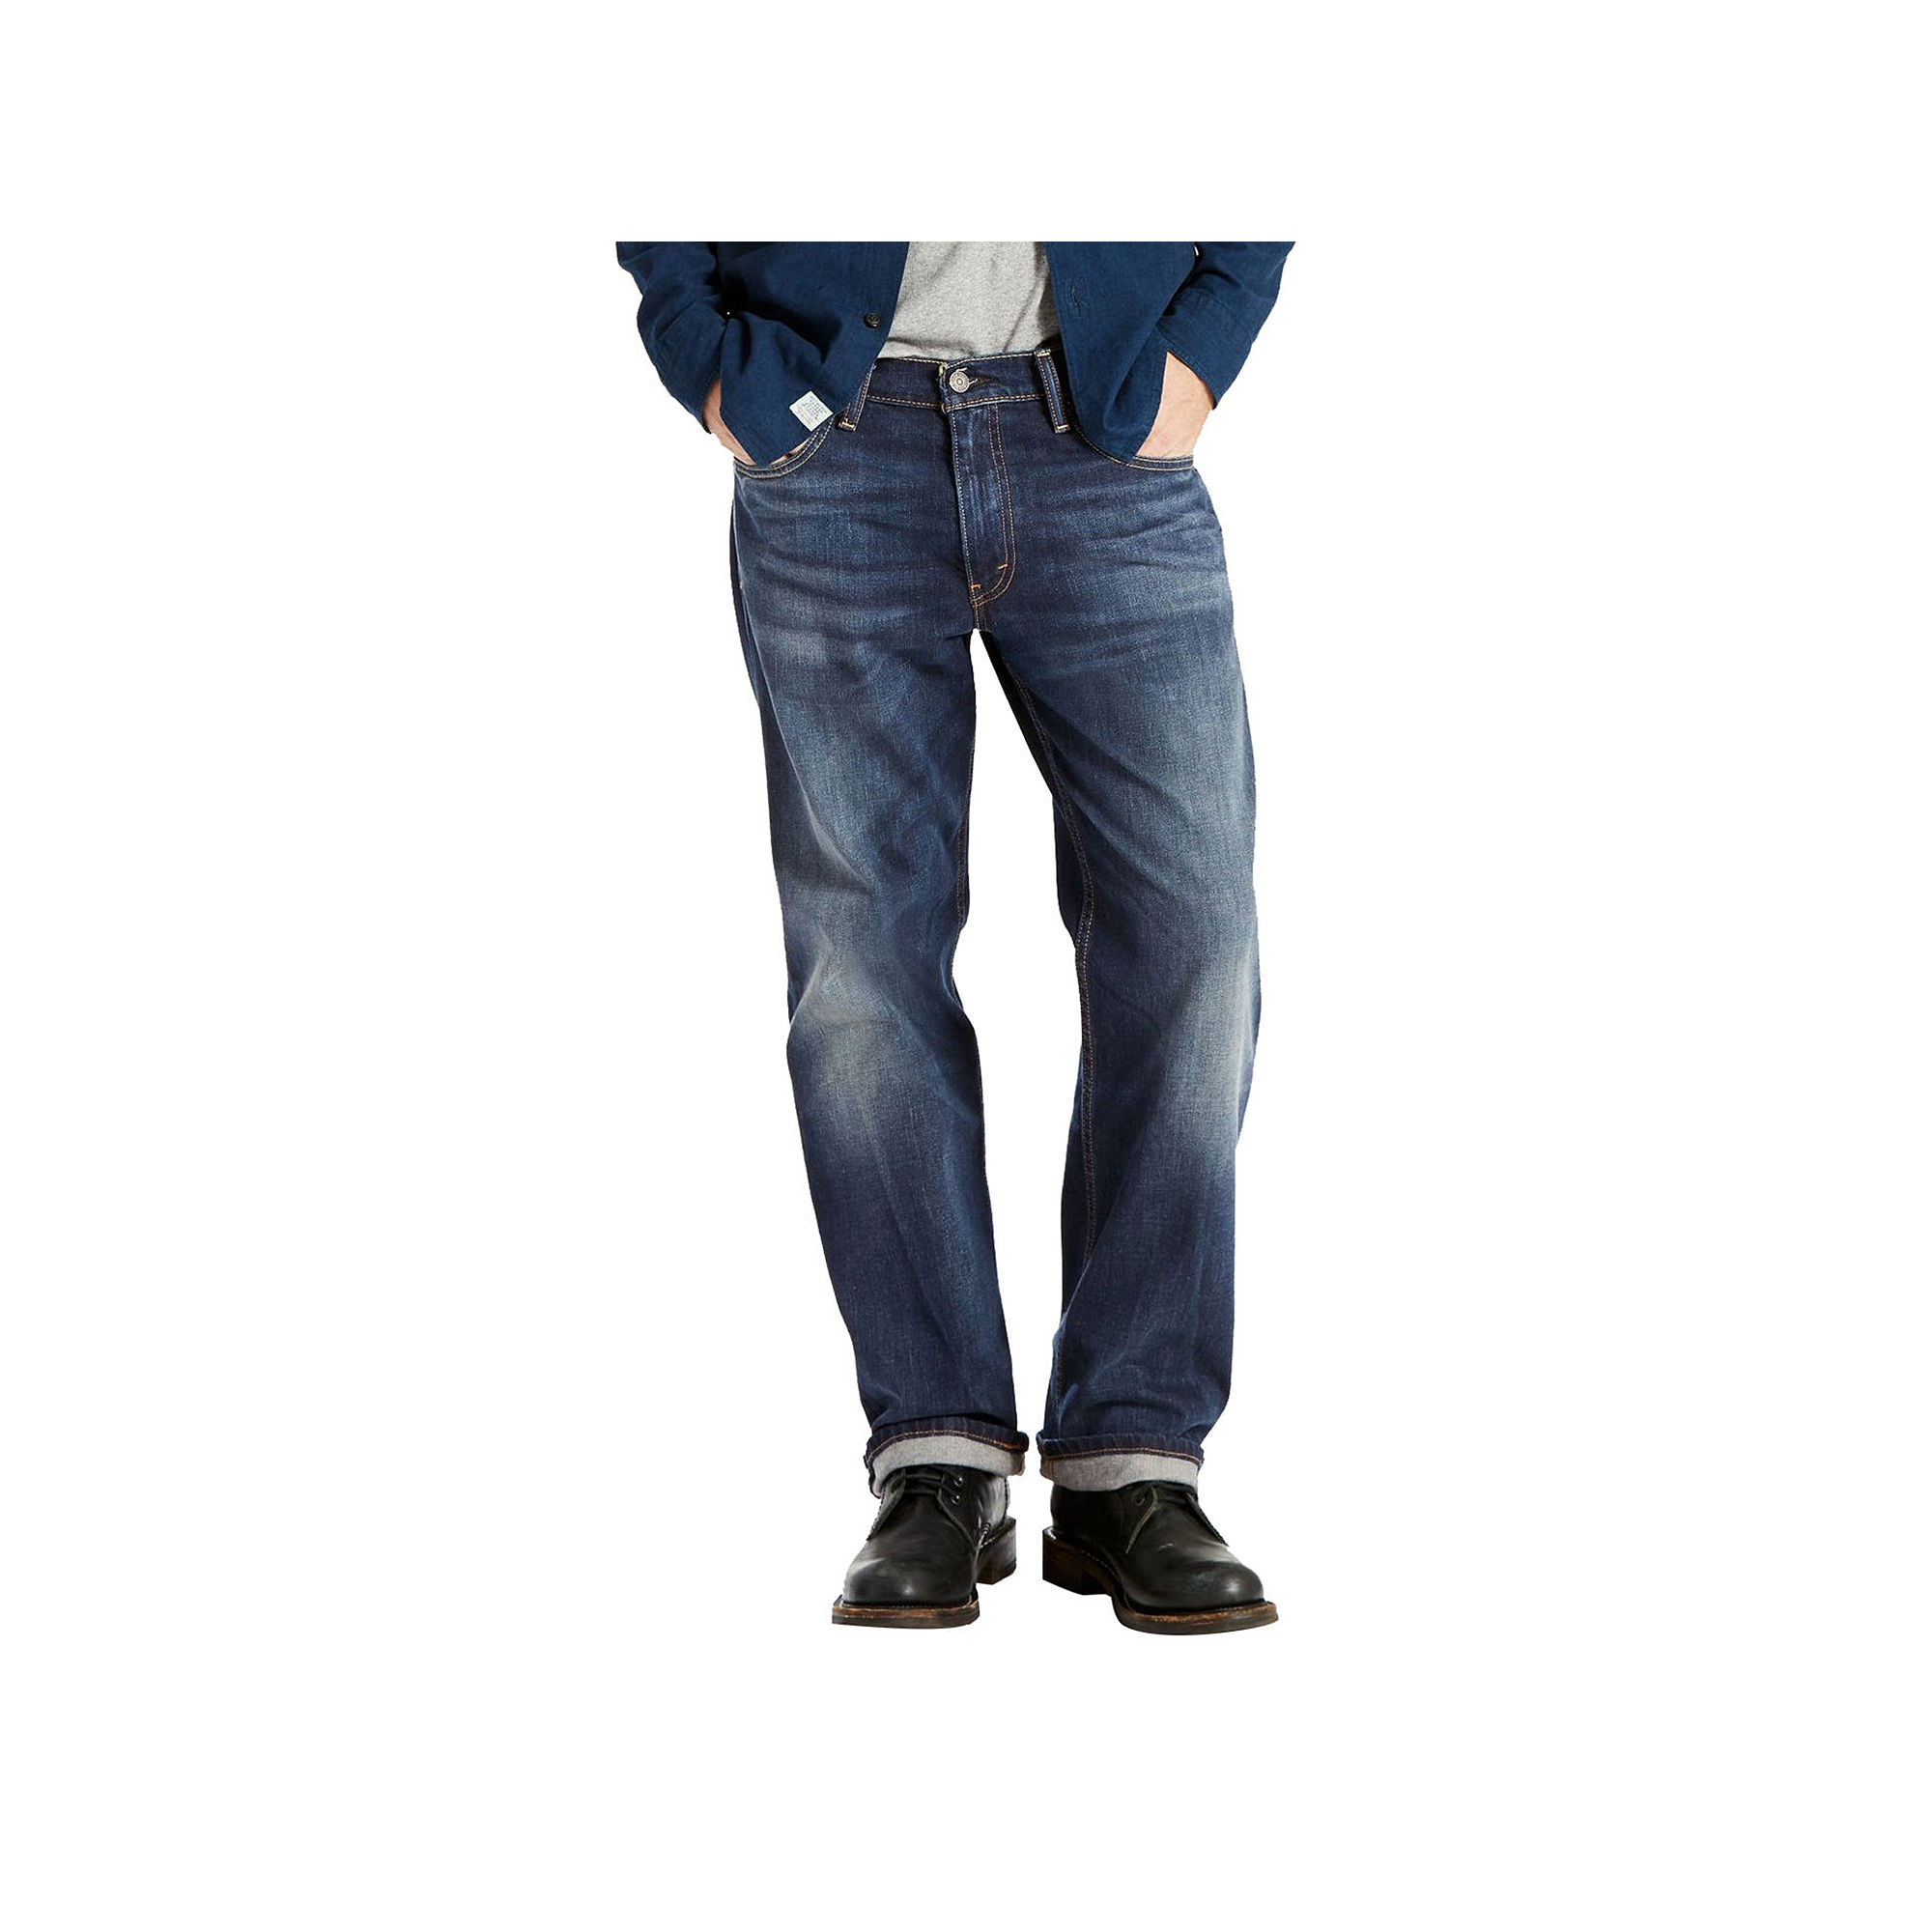 "Levis 569"" Loose Straight Stretch Jeans"